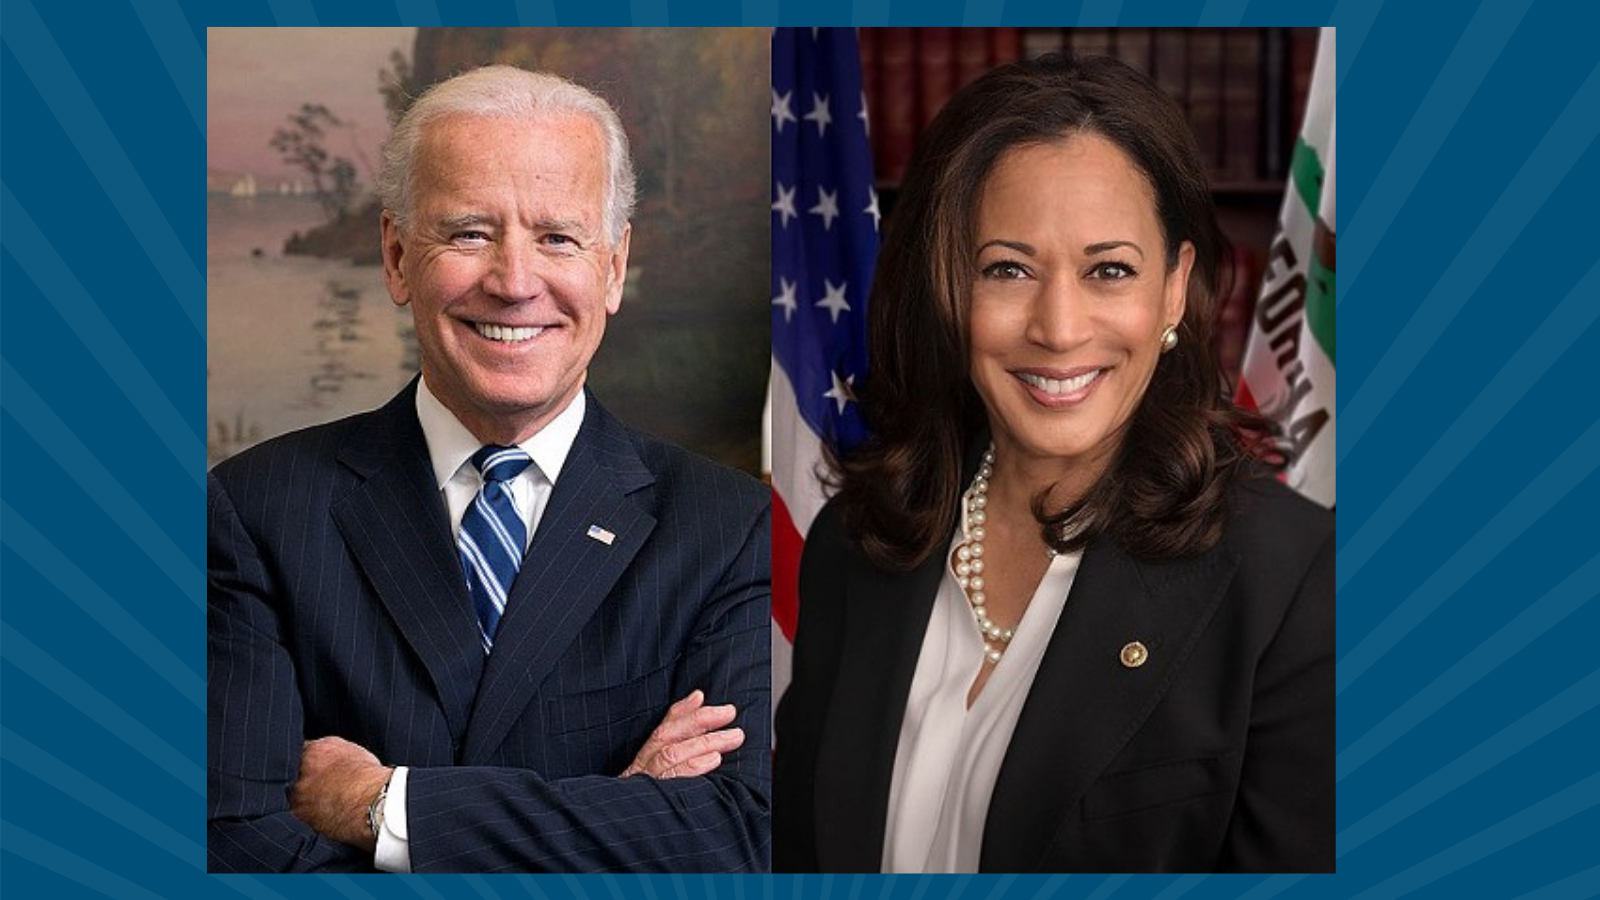 Biden and Harris administration